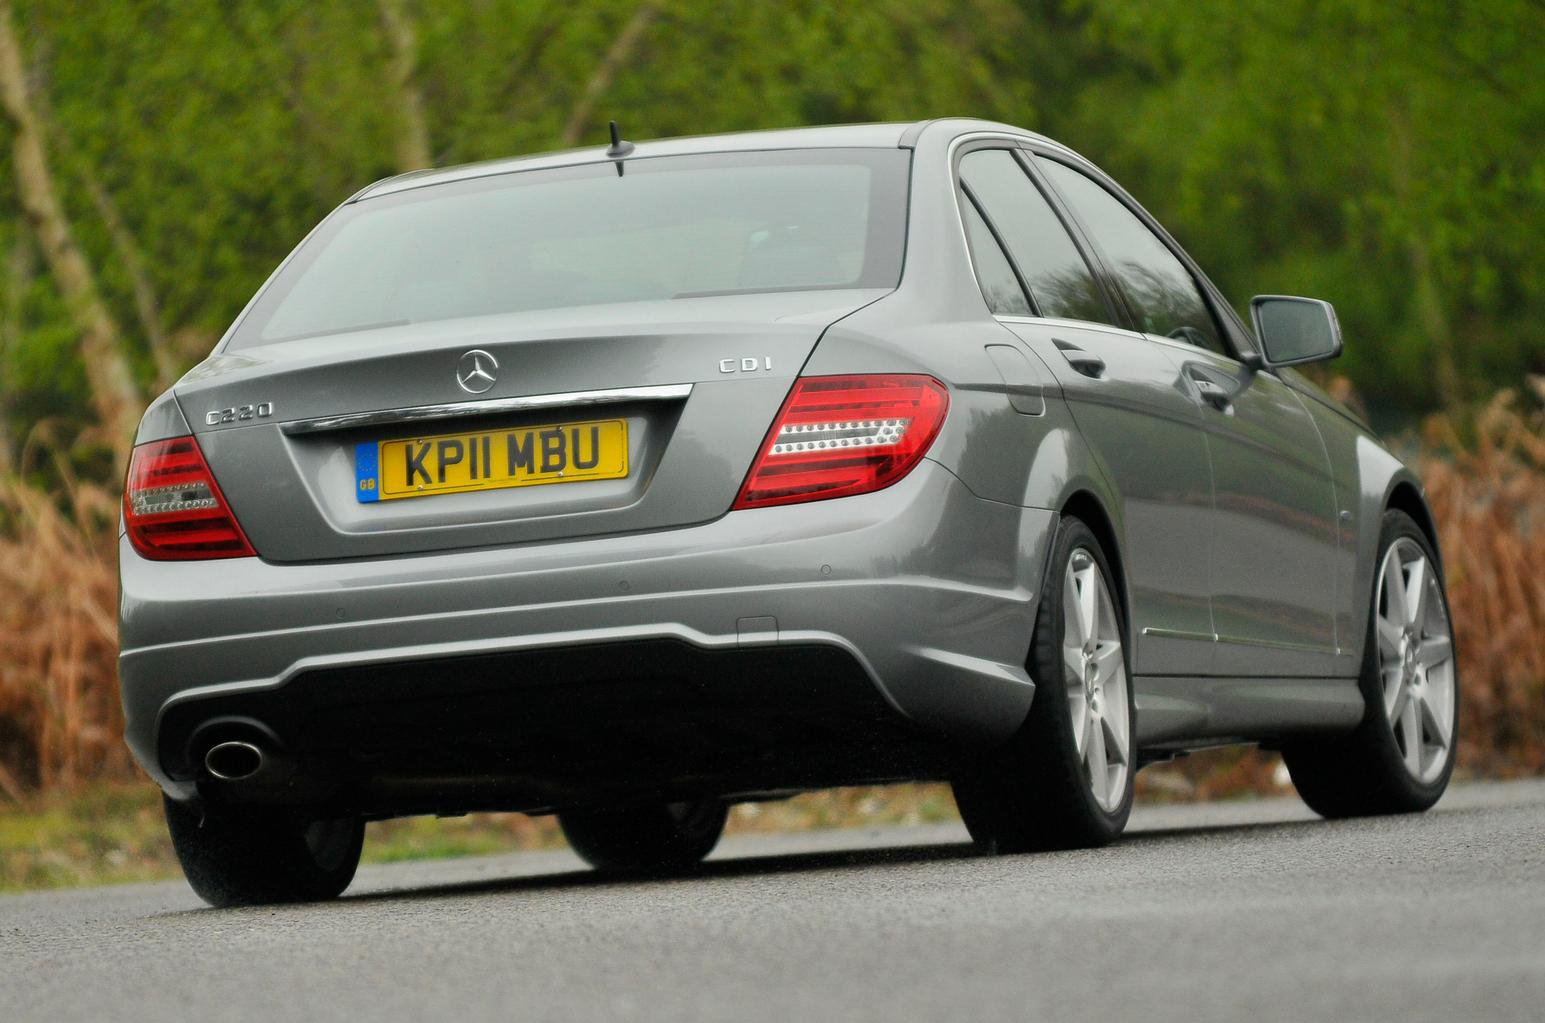 Used Audi A4 vs BMW 3 Series vs Mercedes C-Class vs Citroen DS5